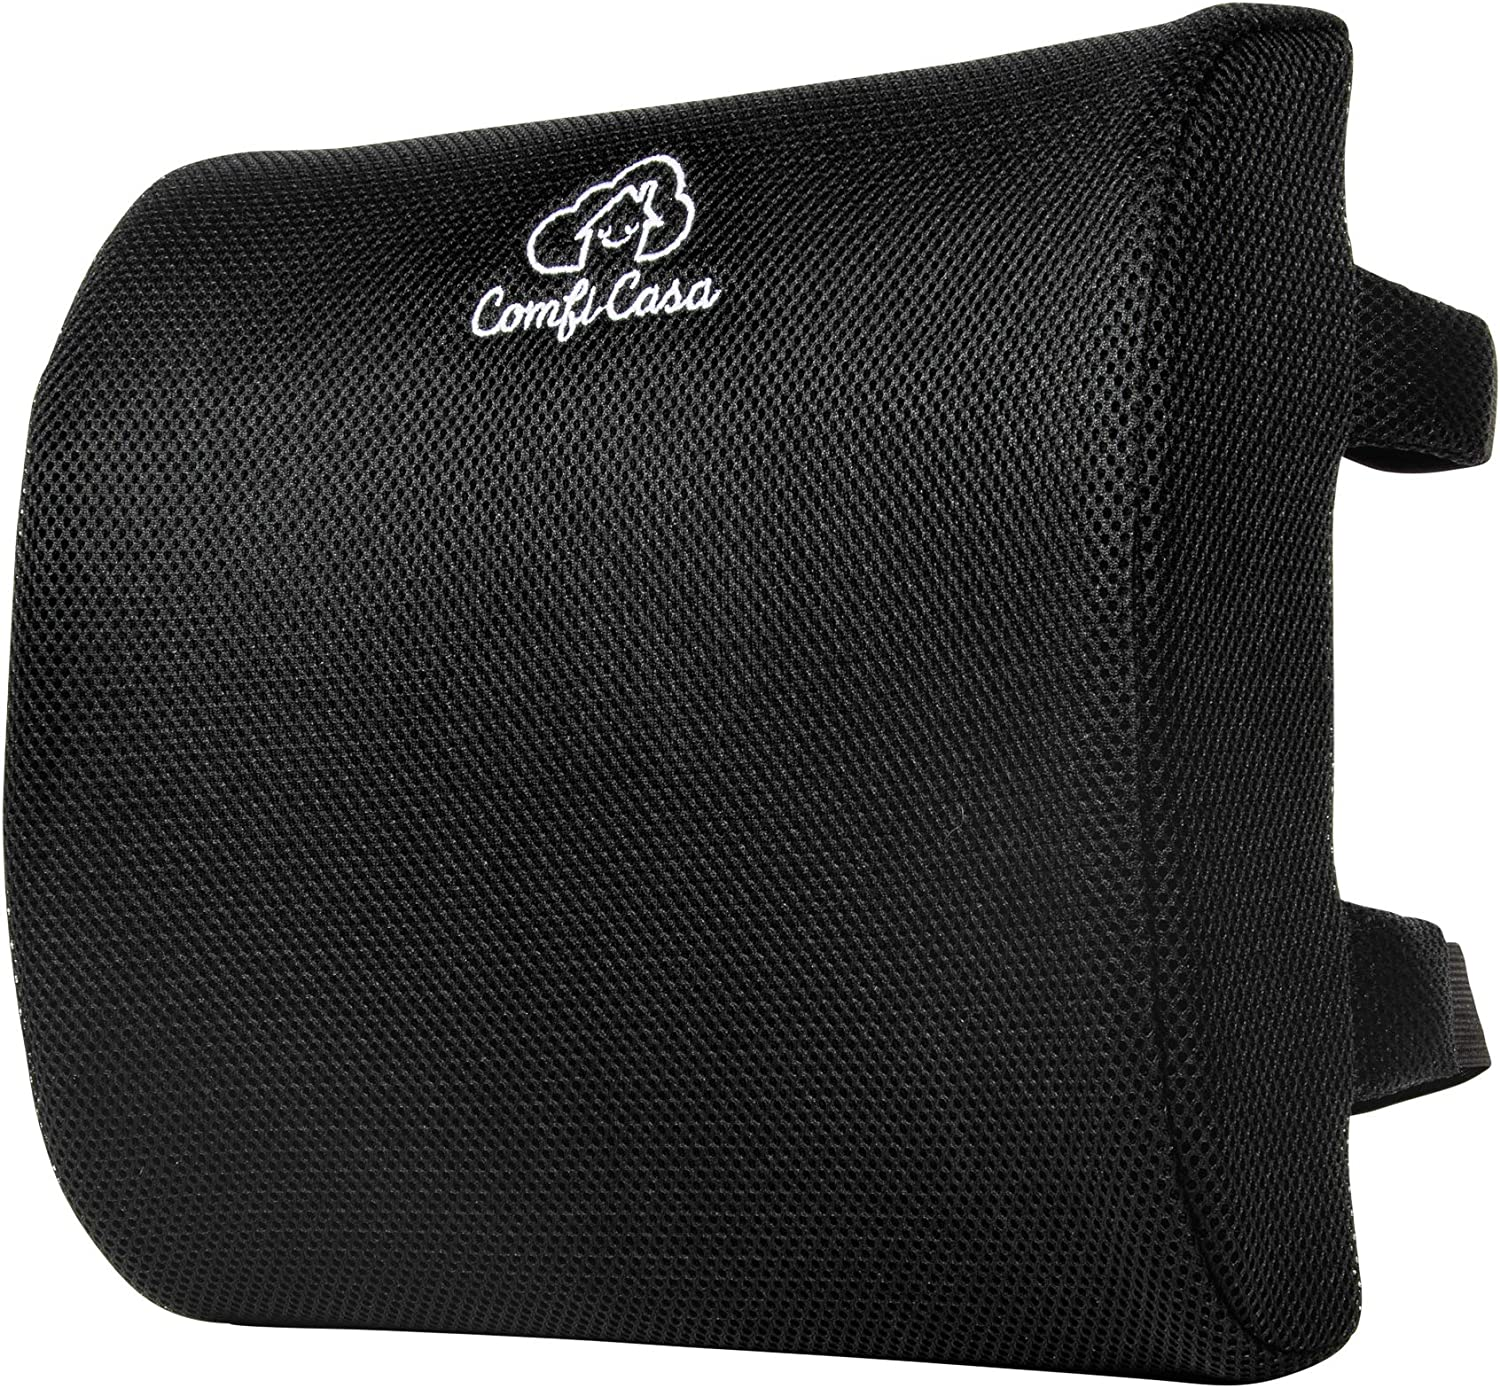 ComfiCasa Memory Foam Lumbar Support Pillow Firm safety Sales of SALE items from new works for Lumb Chair-